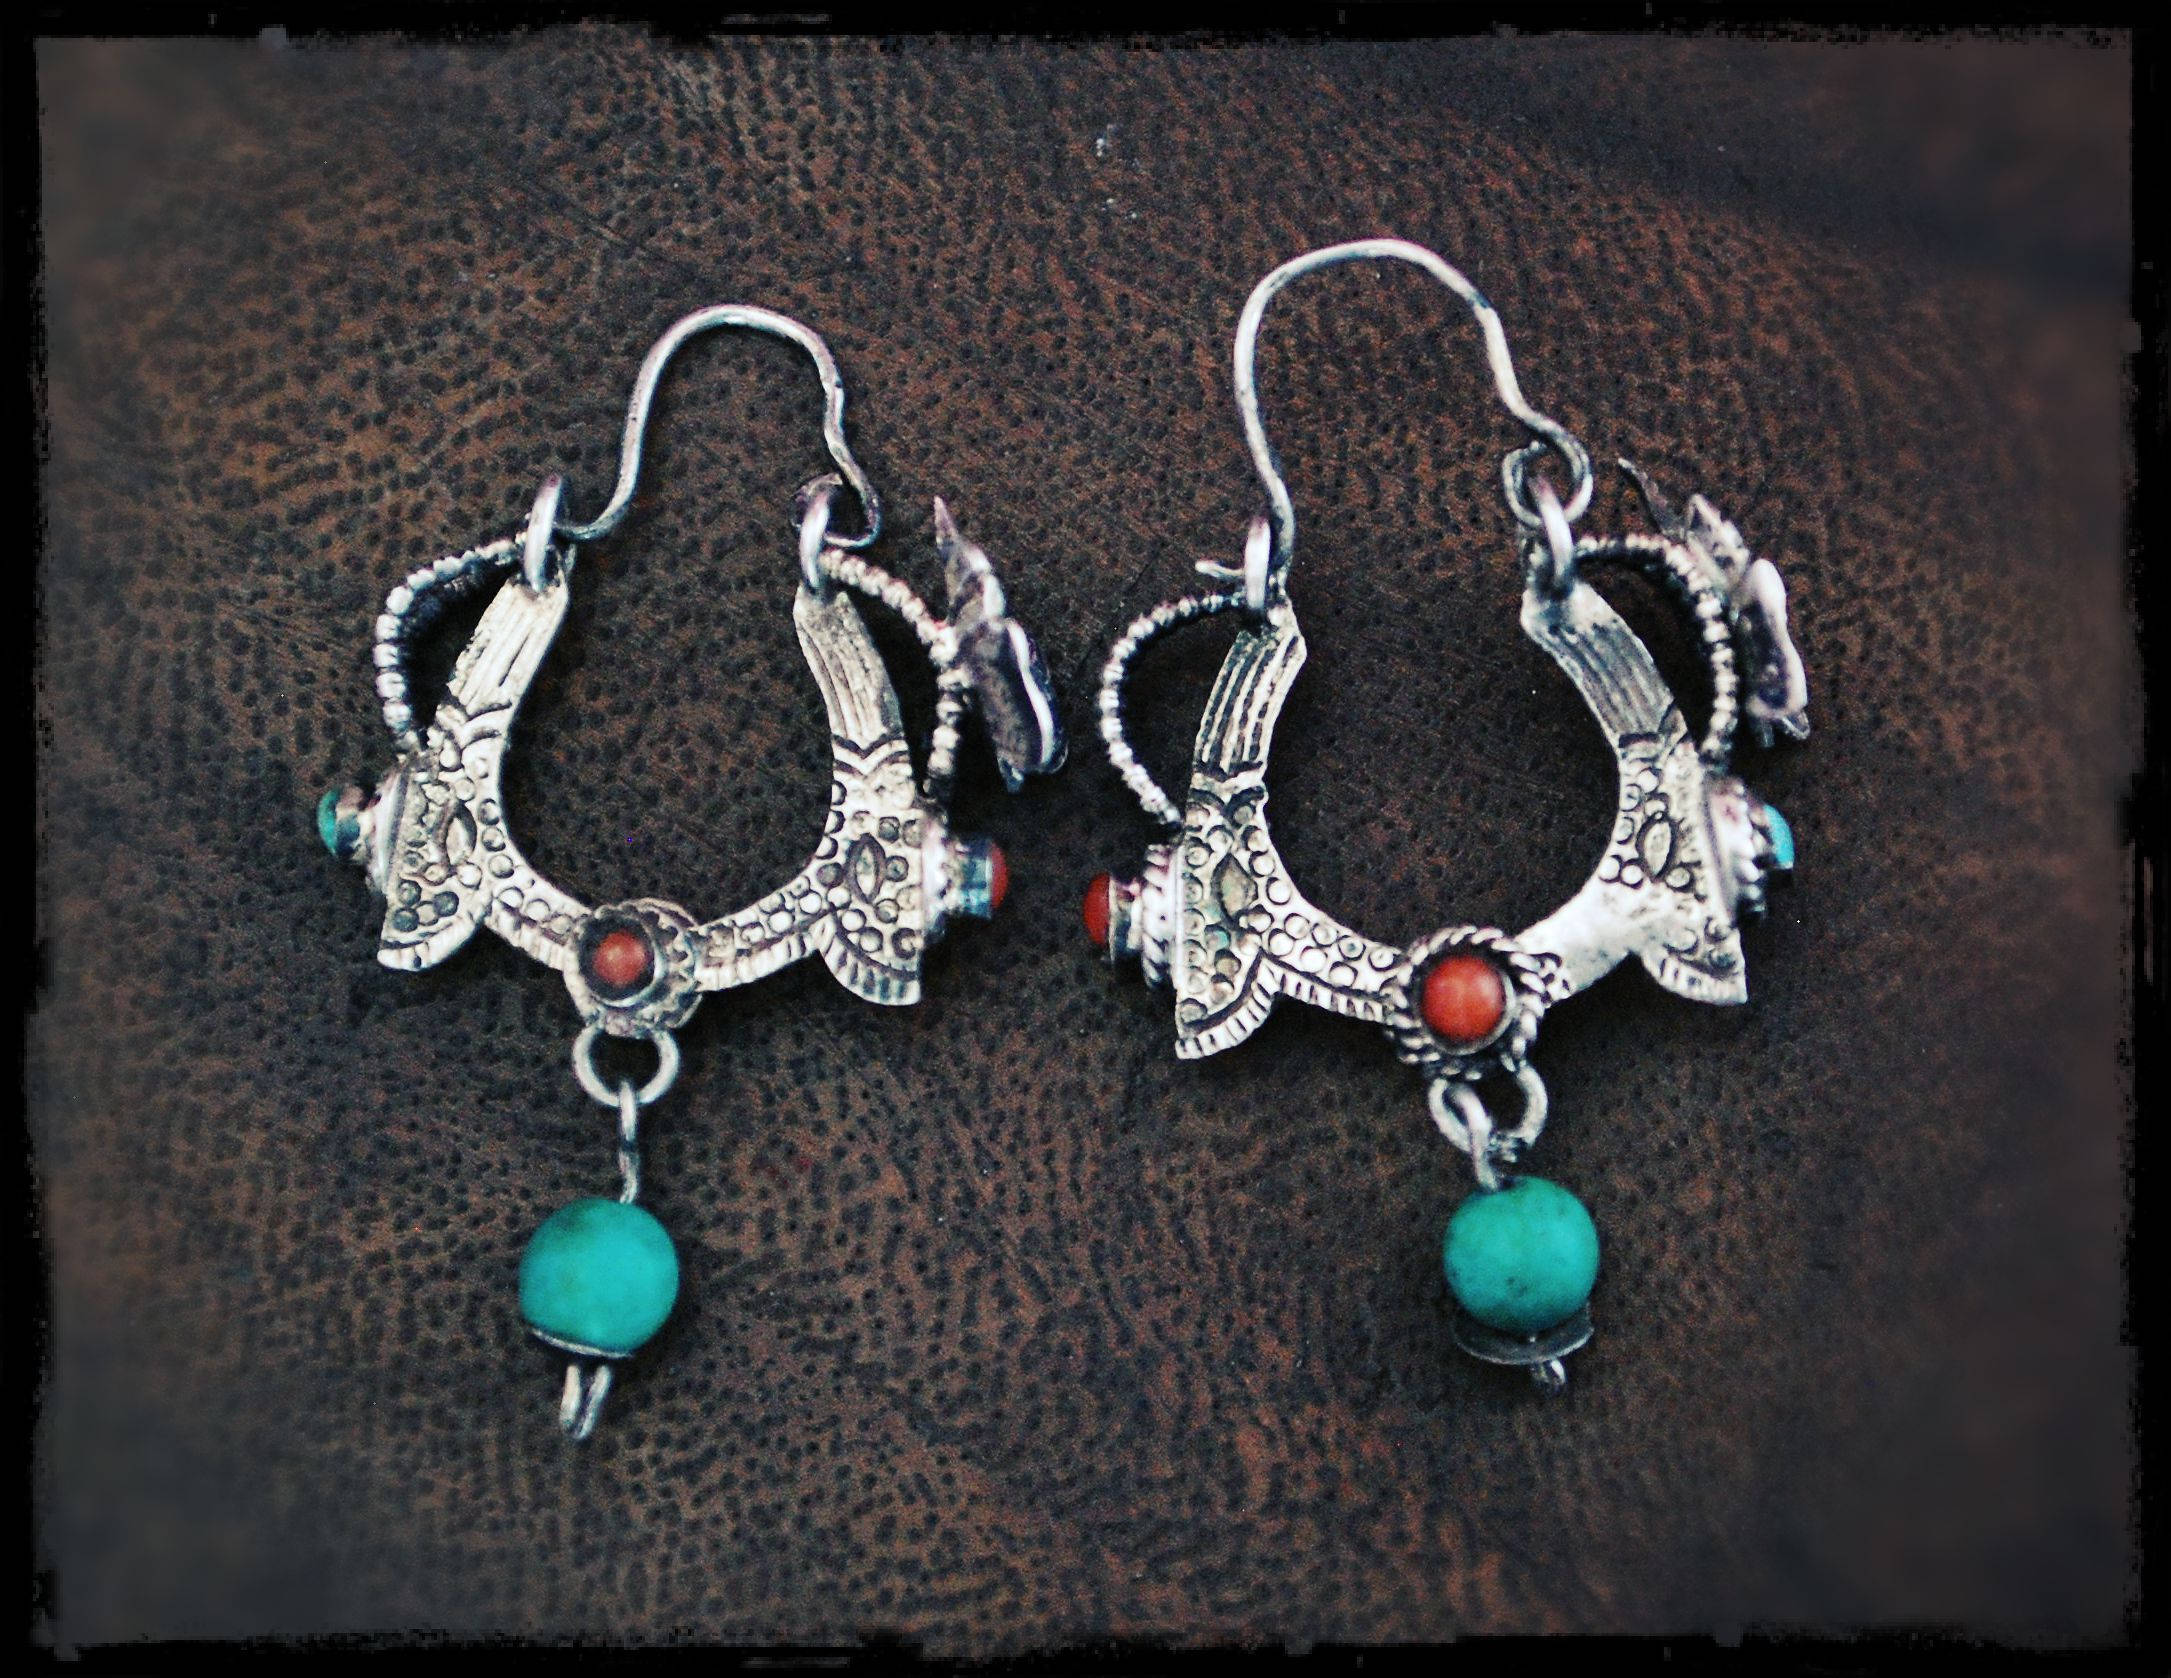 Tibetan Hoop Earrings with Turquoise